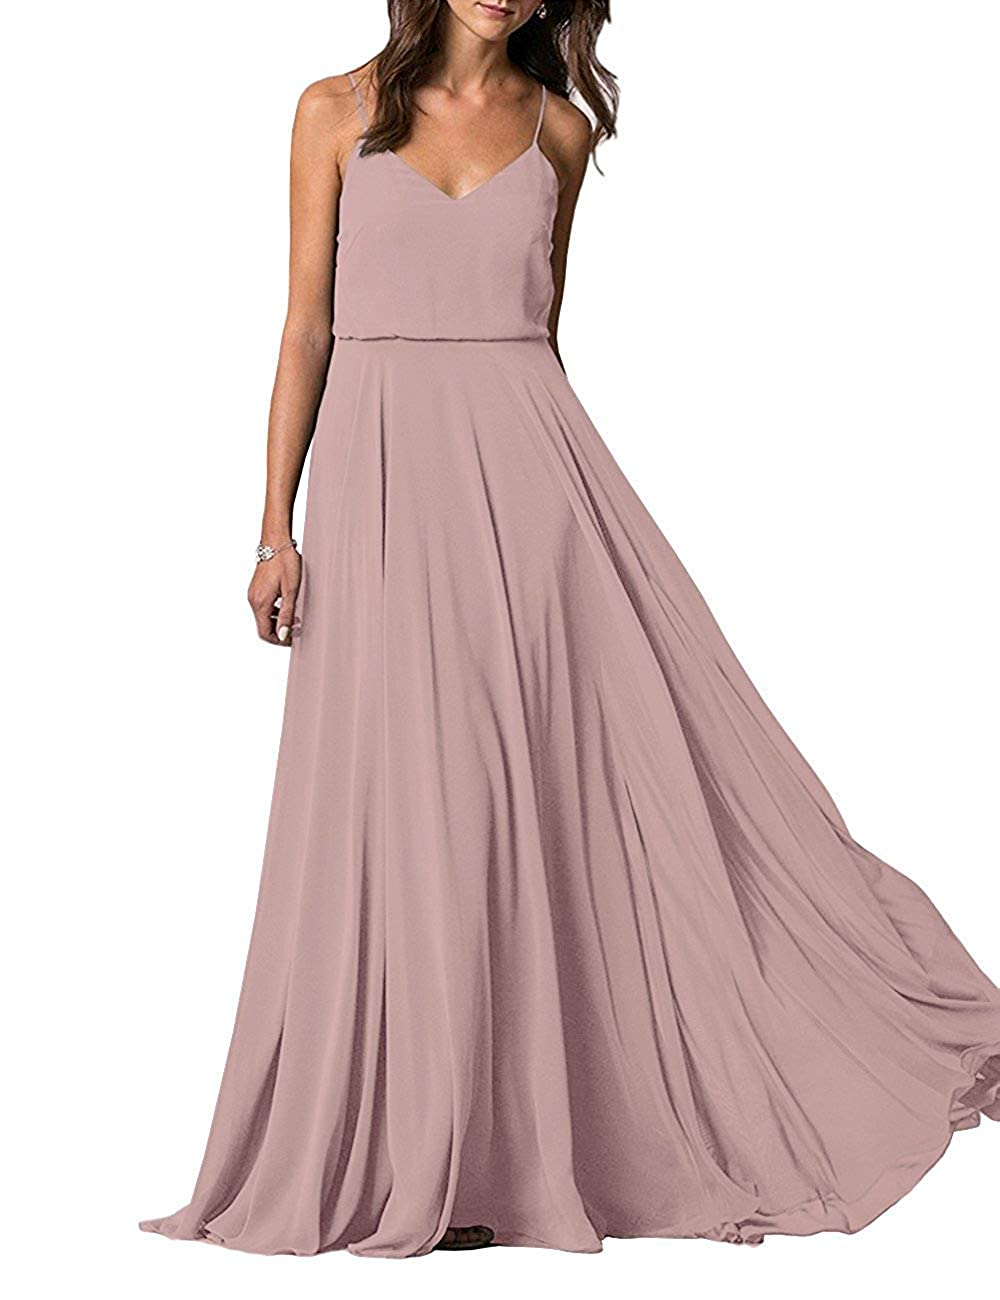 bluesh YUSHENGSM Spaghetti Straps VNeck Long Bridesmaid Dress Wedding Beach Prom Skirt